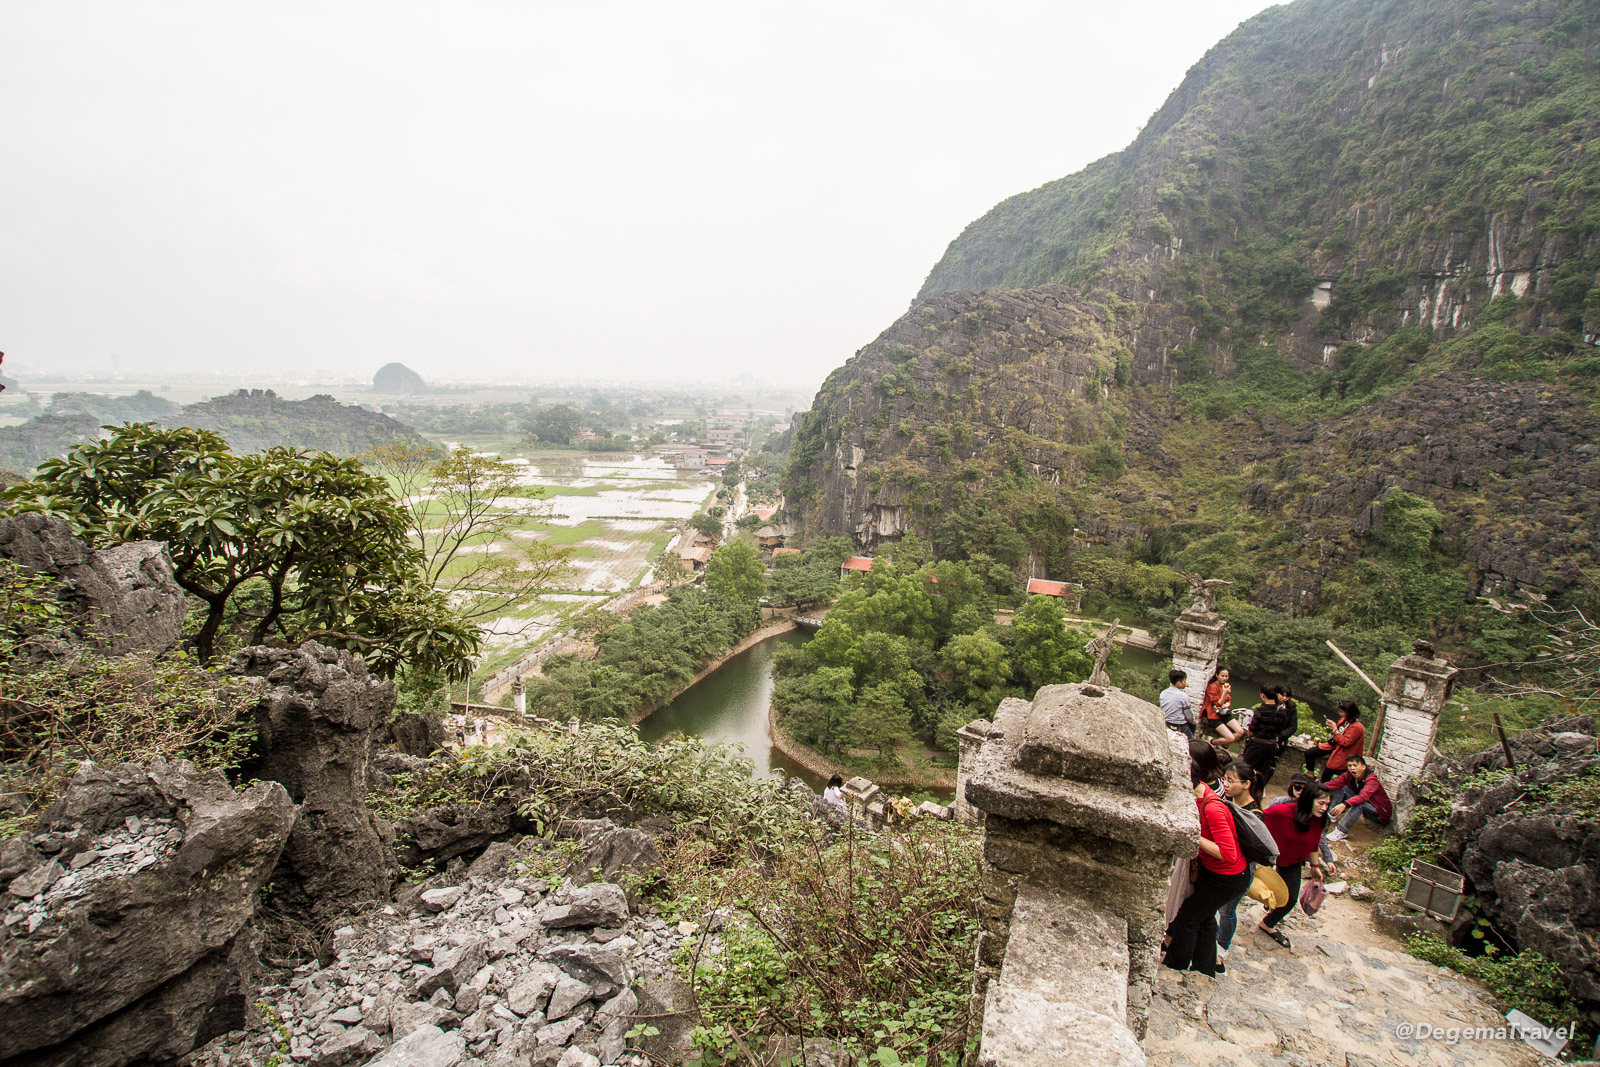 The stairs to Hang Mua Viewpoint in Tam Coc, Vietnam